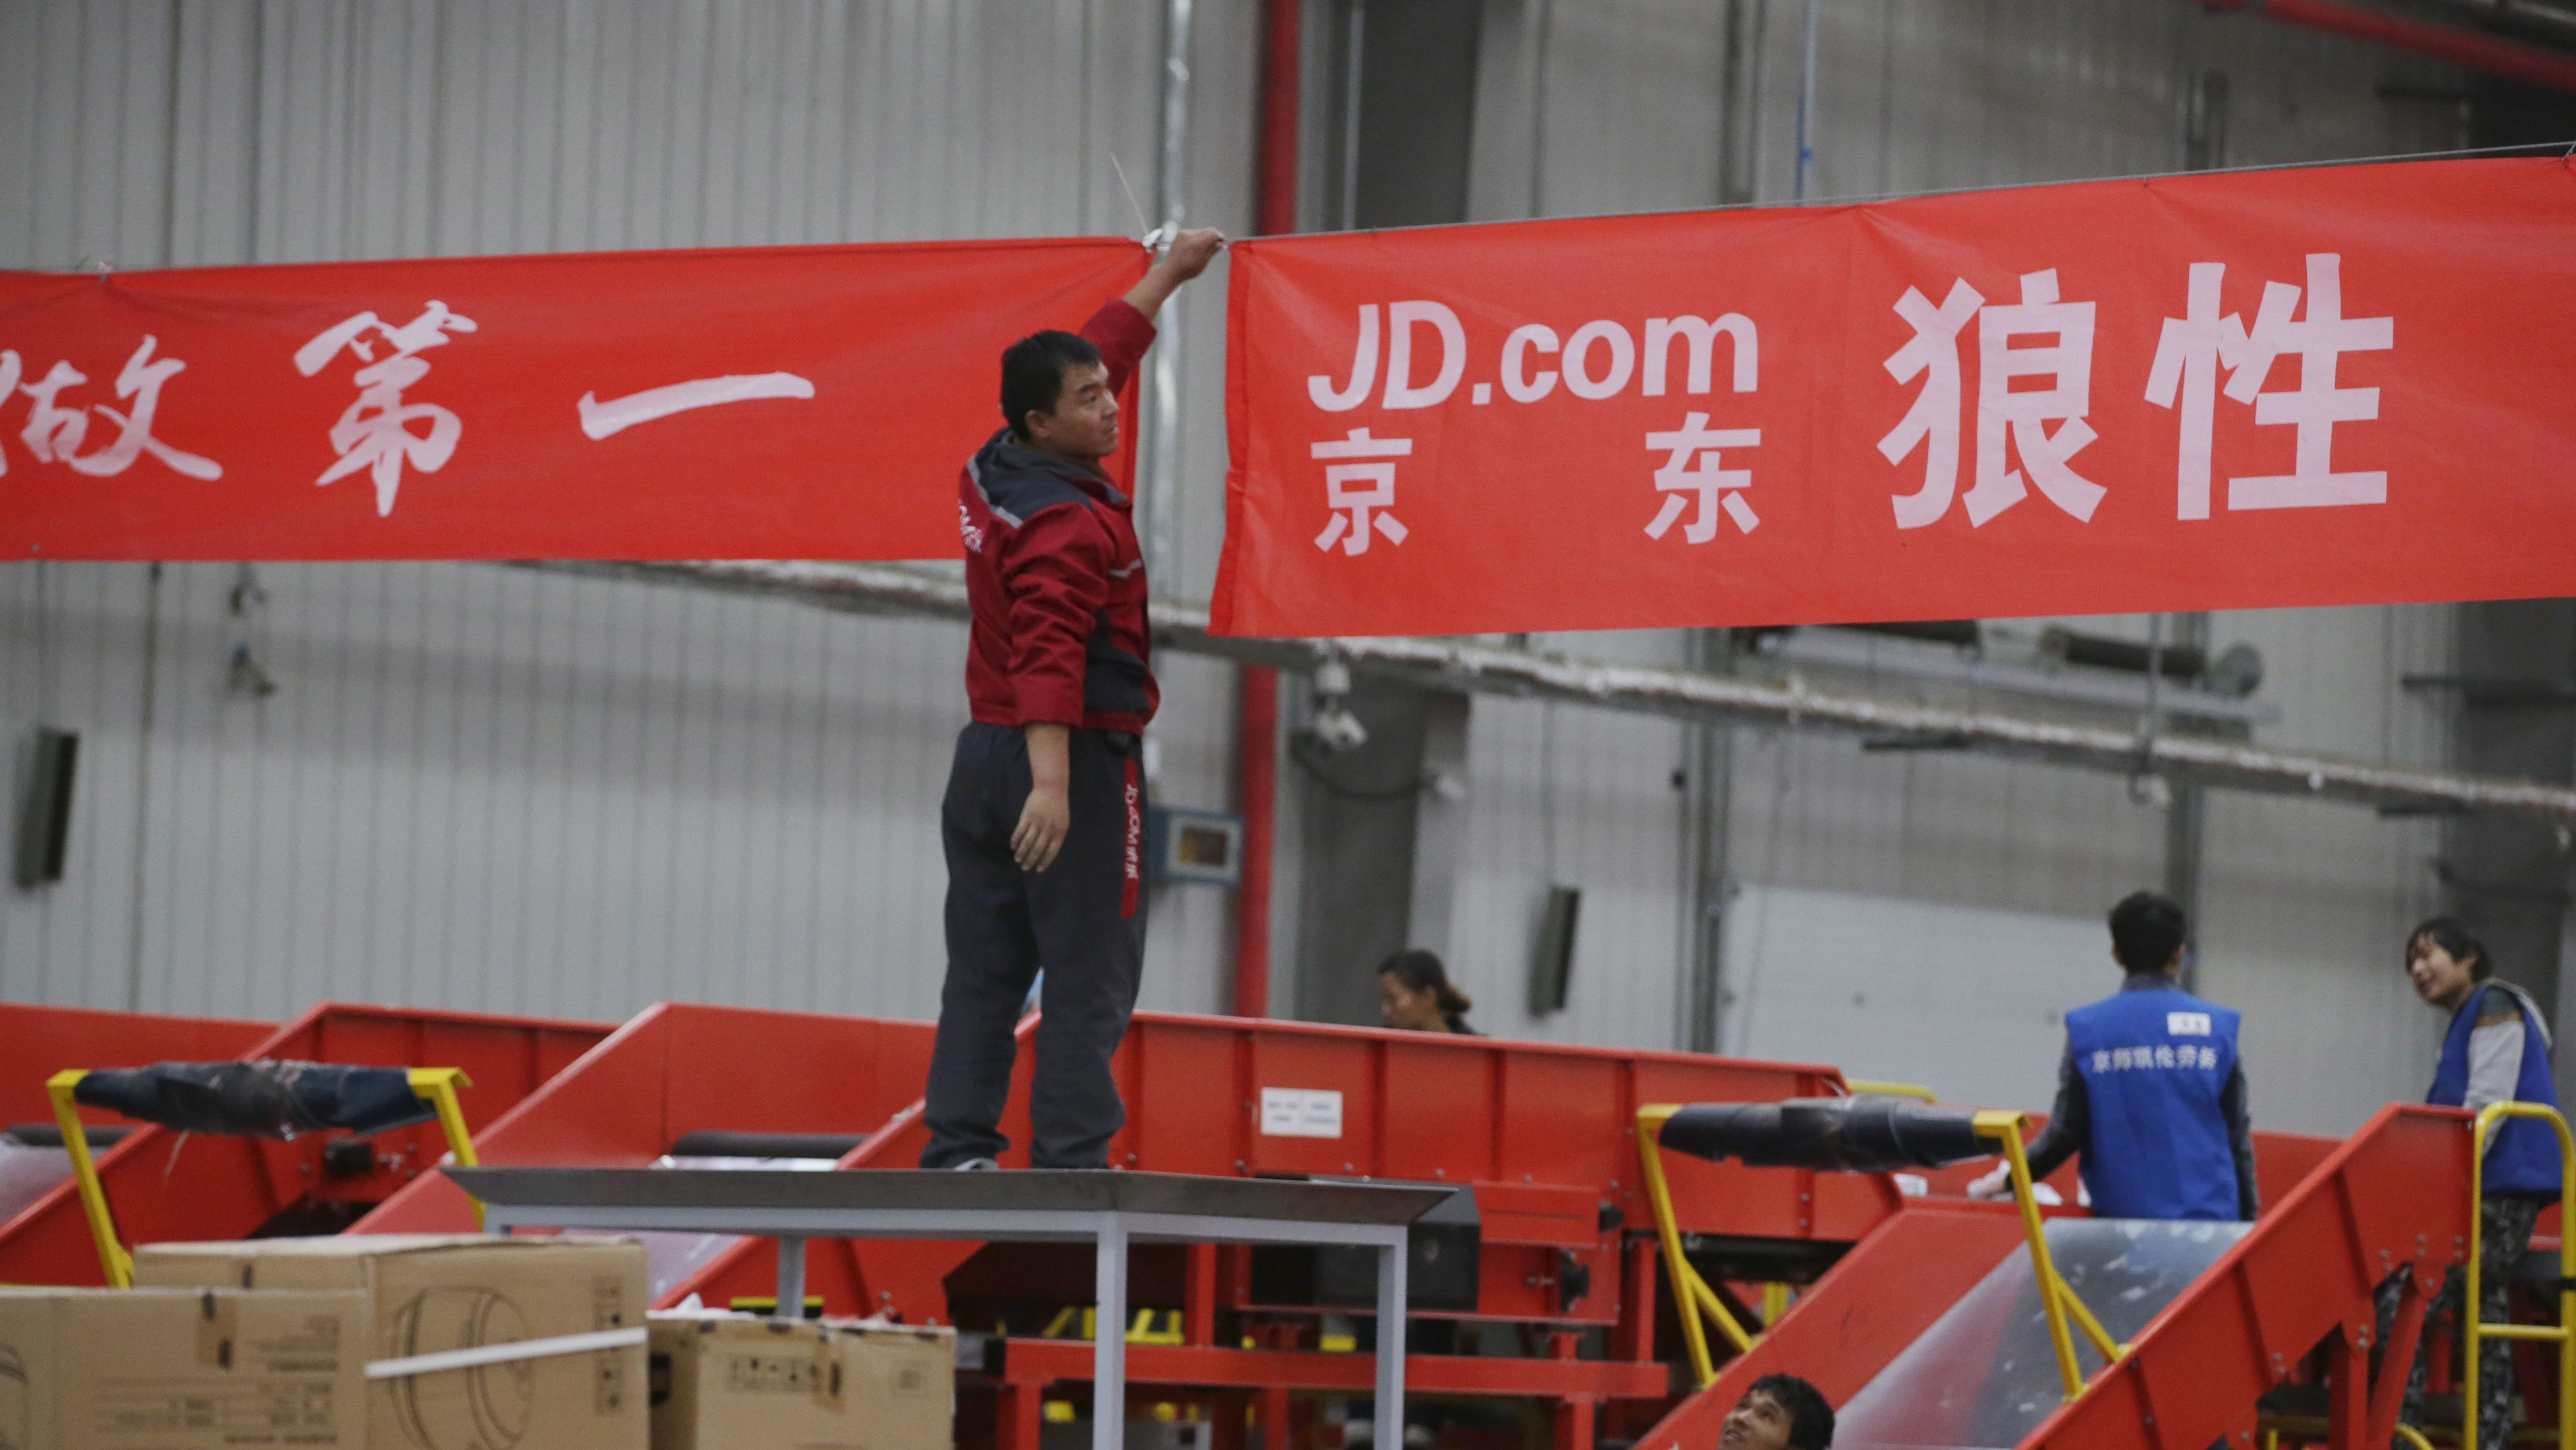 An employee works at a JD.com logistic centre in Langfang, Hebei province, November 10, 2015. On China's giant Singles Day internet shopping festival, the country's delivery firms are stretched so thin that they are looking for tie-ups, listings and new investors to husband their resources. E-commerce has been a huge boon to the logistics industry, but the ever-bigger Singles Day, run by leading online market company Alibaba Group Holding Ltd on Nov. 11 every year, exacerbates the industry's twin dilemmas of cut-throat competition and rising labor costs. With low barriers to entry, express couriers proliferated rapidly over the past decade to more than 8,000 firms, squeezing profit margins to about 5 percent, down from 30 percent 10 years ago, according to analysts.